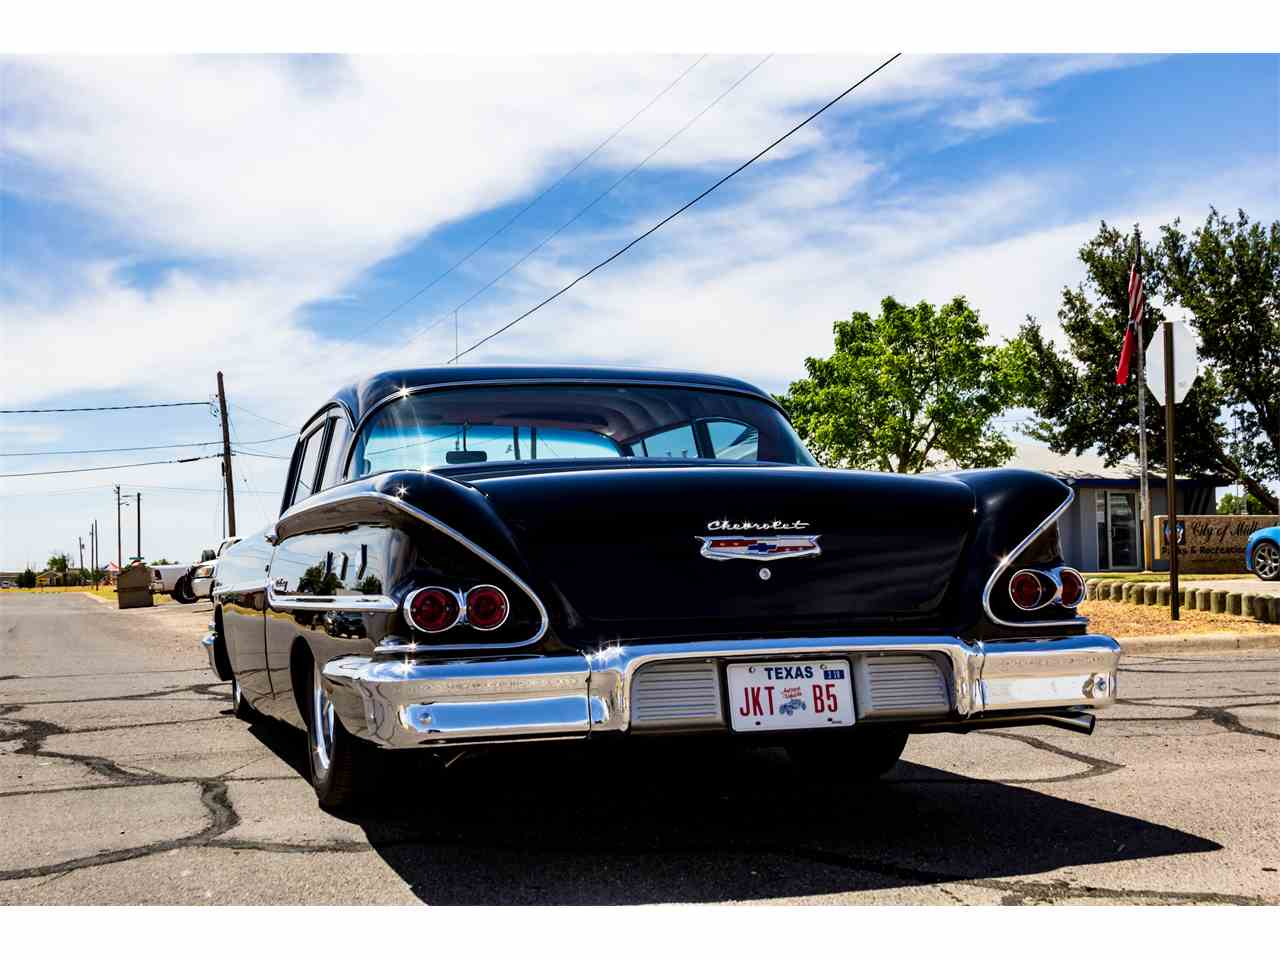 Large Picture of 1958 Chevrolet Del Ray located in Midland Texas - $41,500.00 Offered by a Private Seller - LVAQ